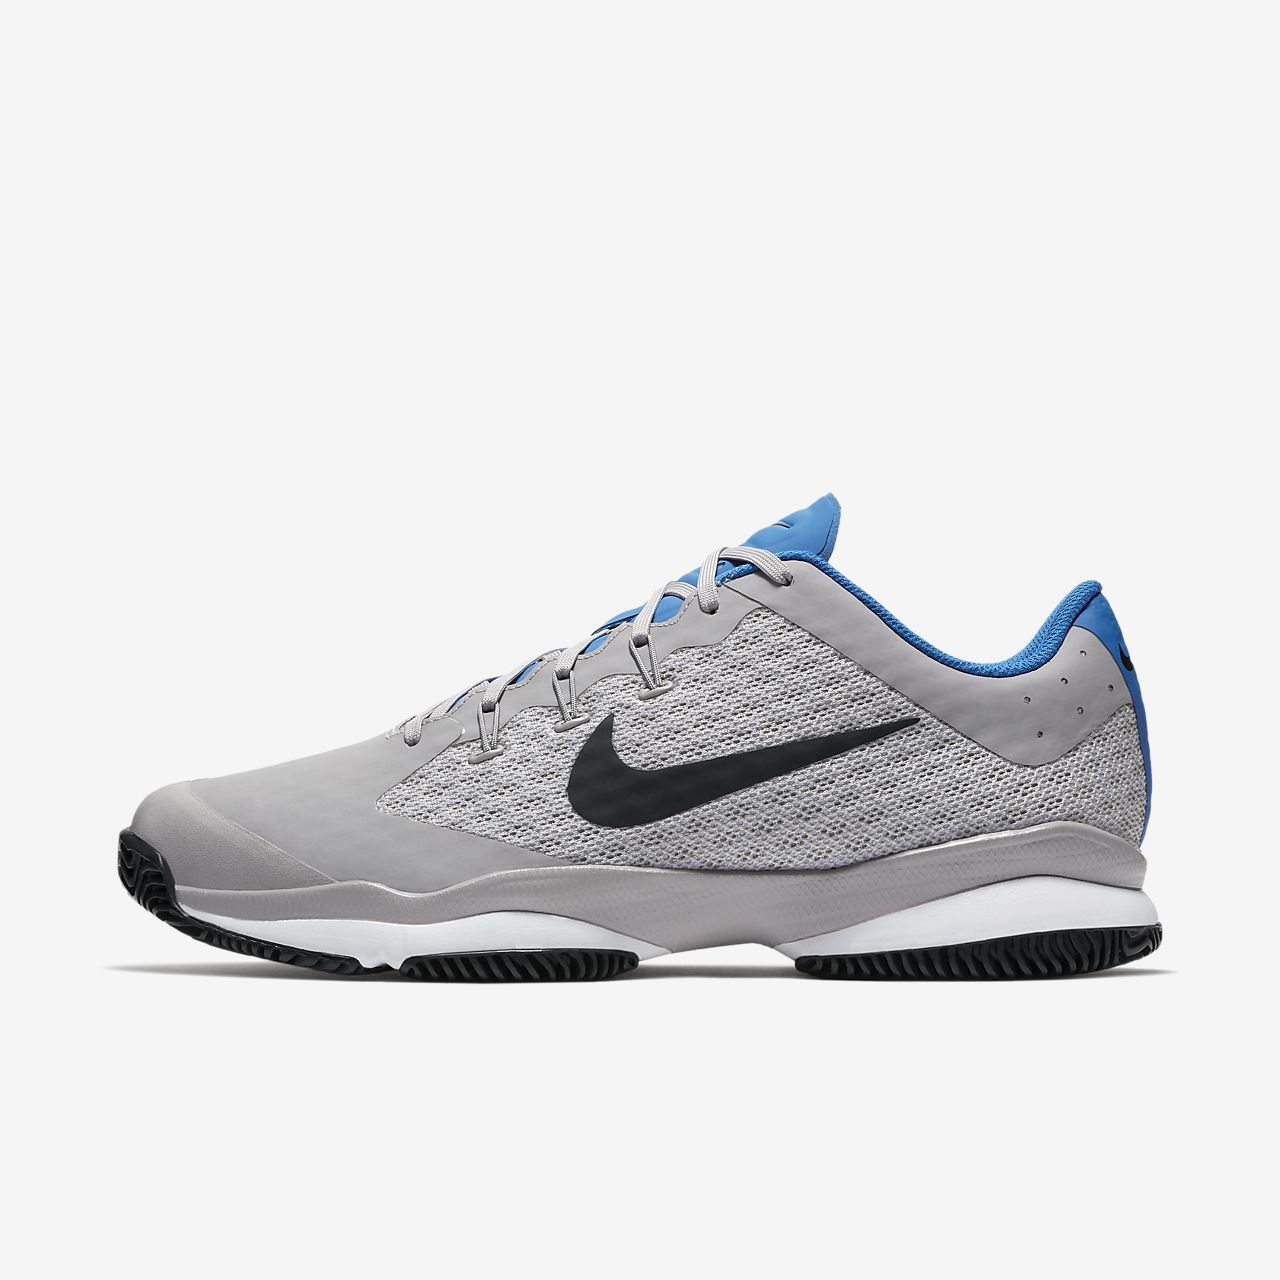 NikeCourt Air Zoom Ultra Carpet - T6434